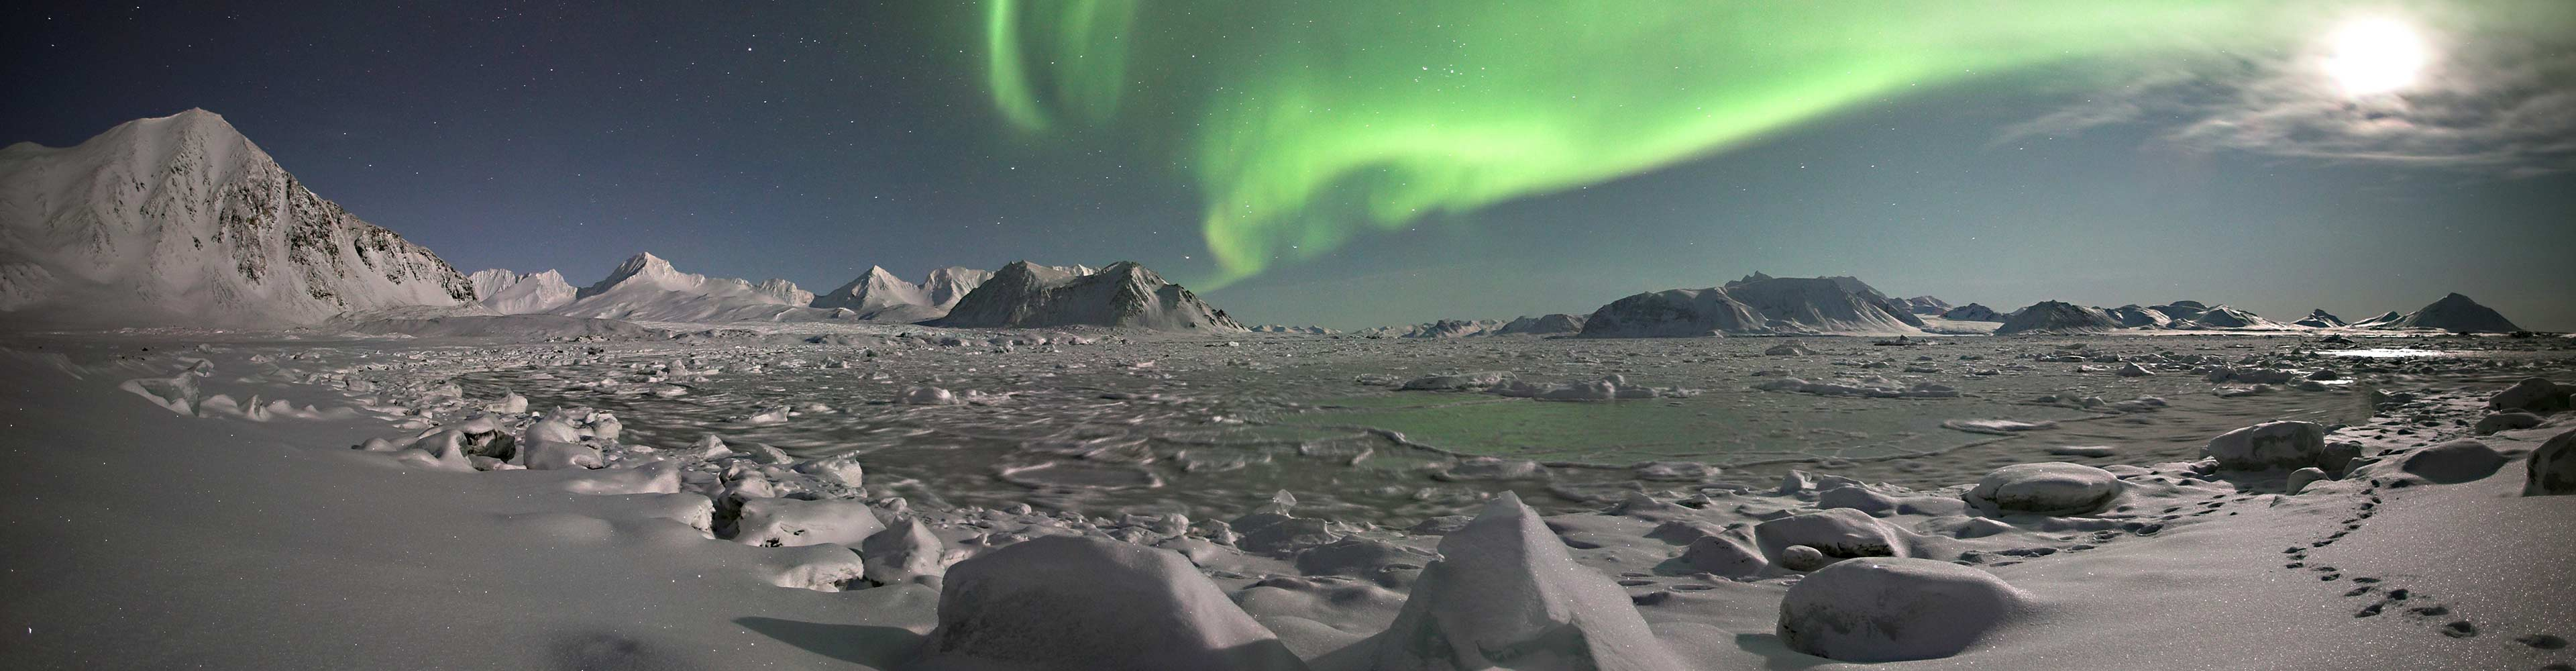 Arctic Express: Greenland's Northern Lights – Fly North, Fly South